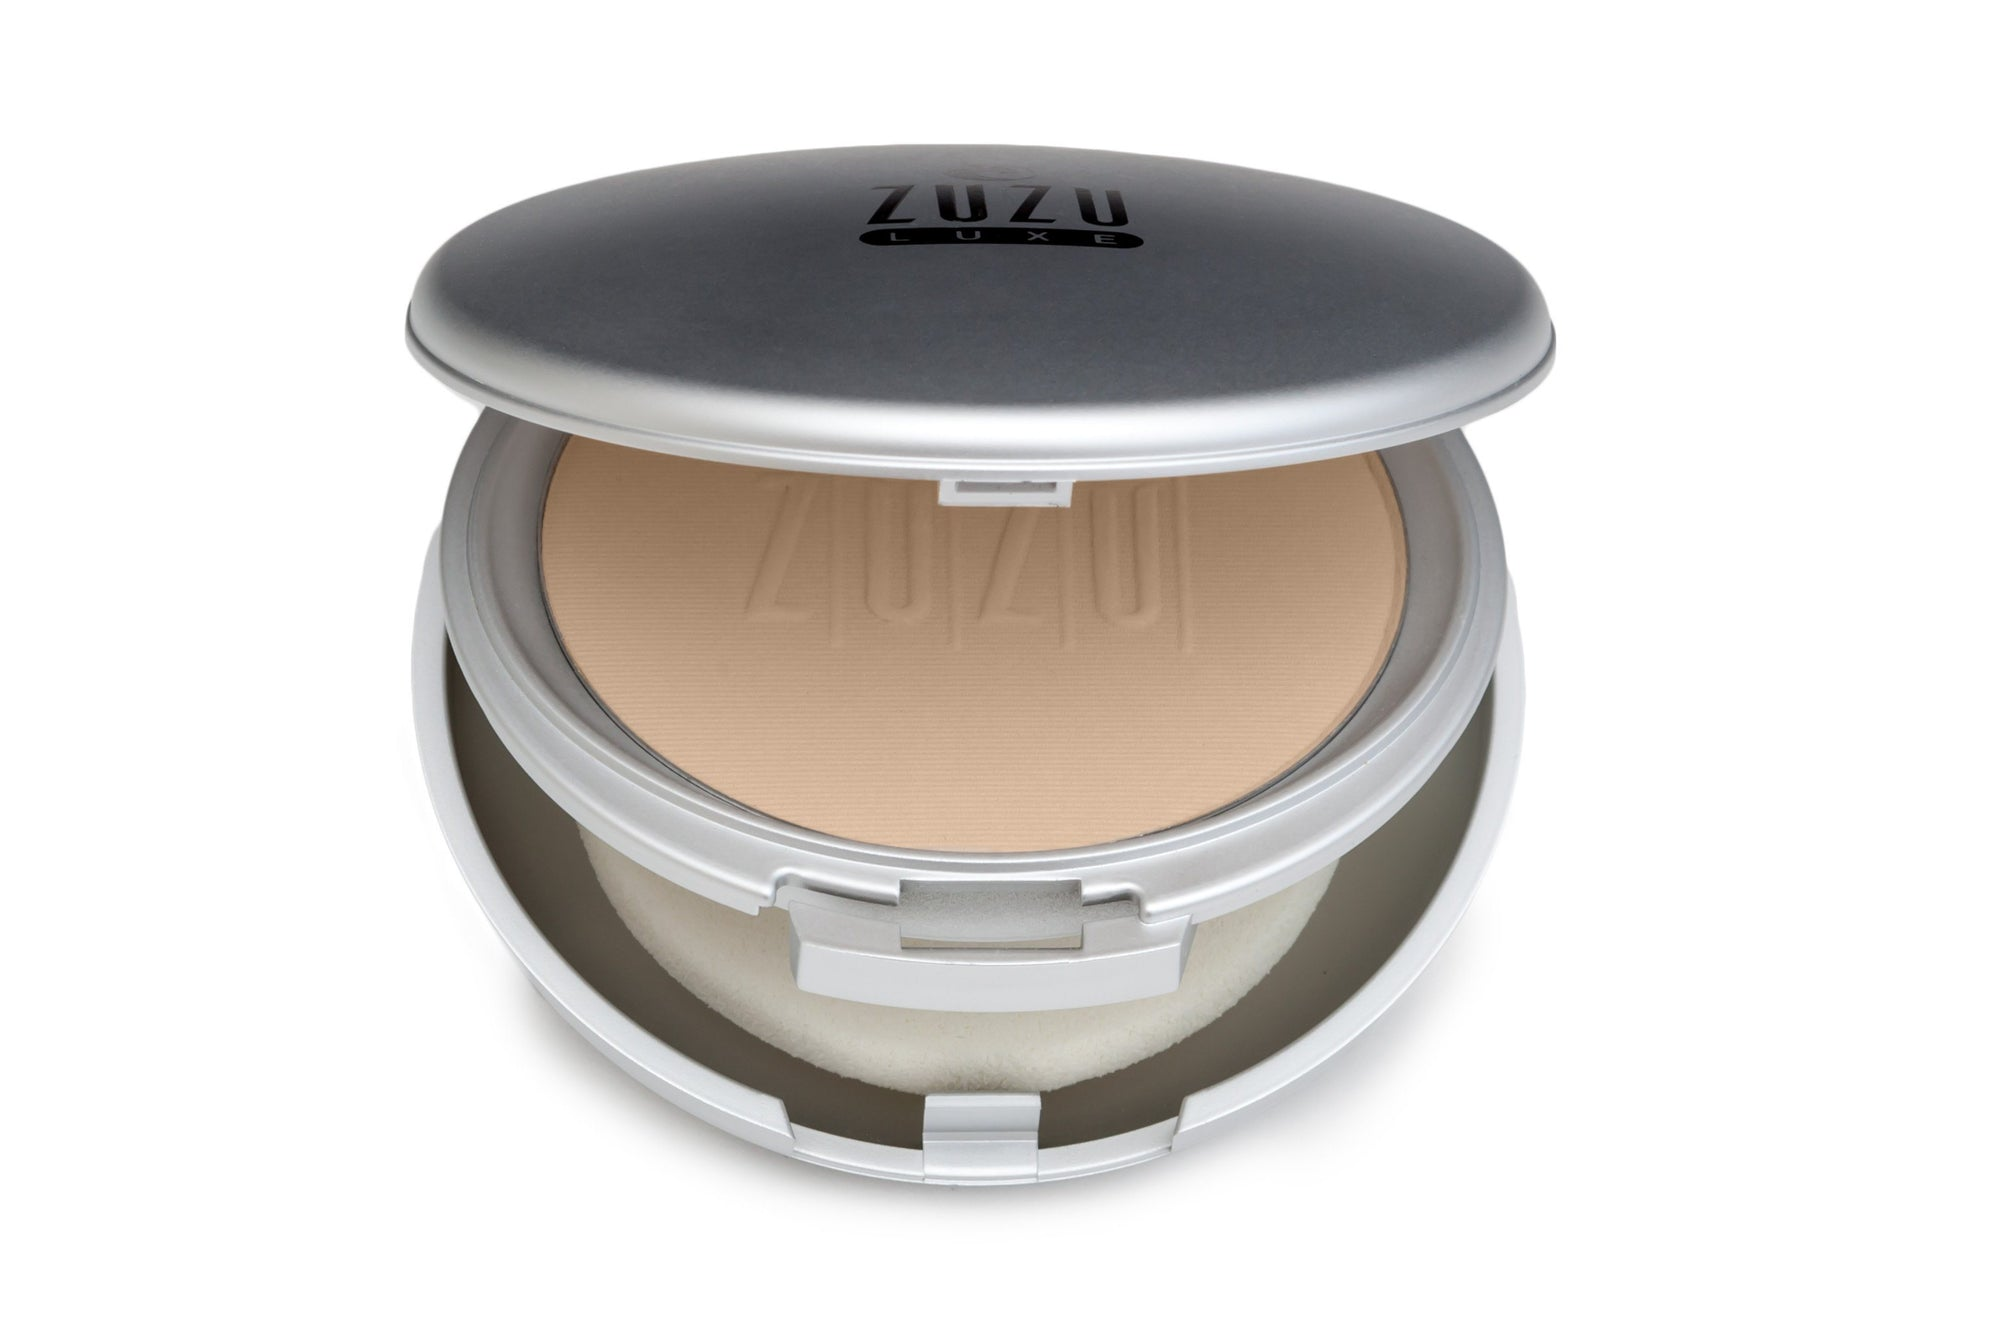 Beauty & Skin Care - Zuzu Luxe - Dual Powder Foundation, D-4